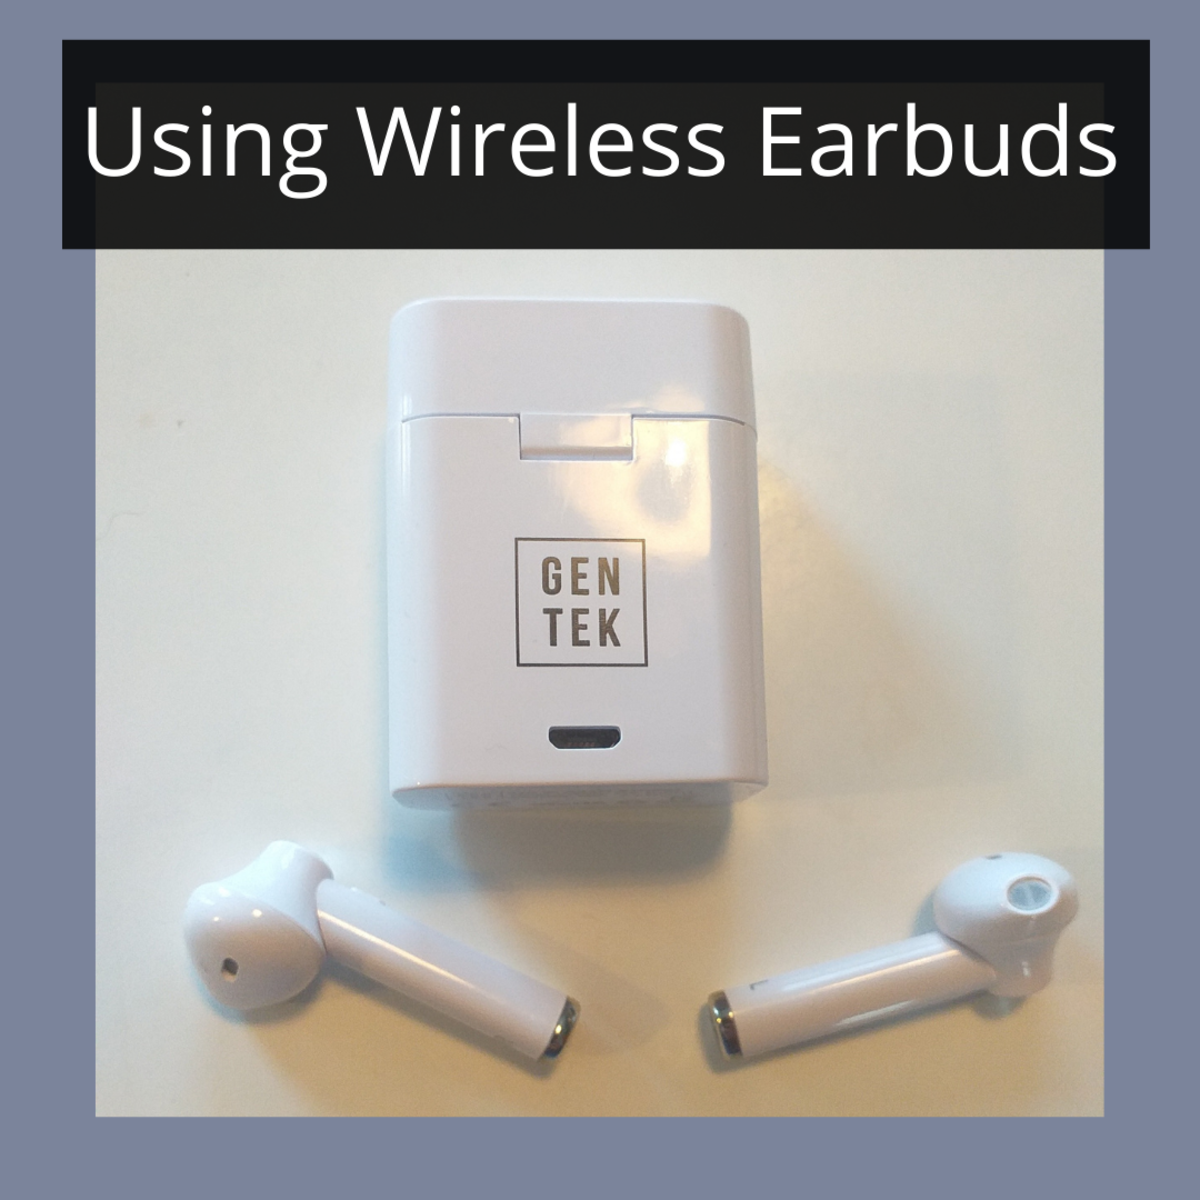 How to pair earbuds that have become unpaired.